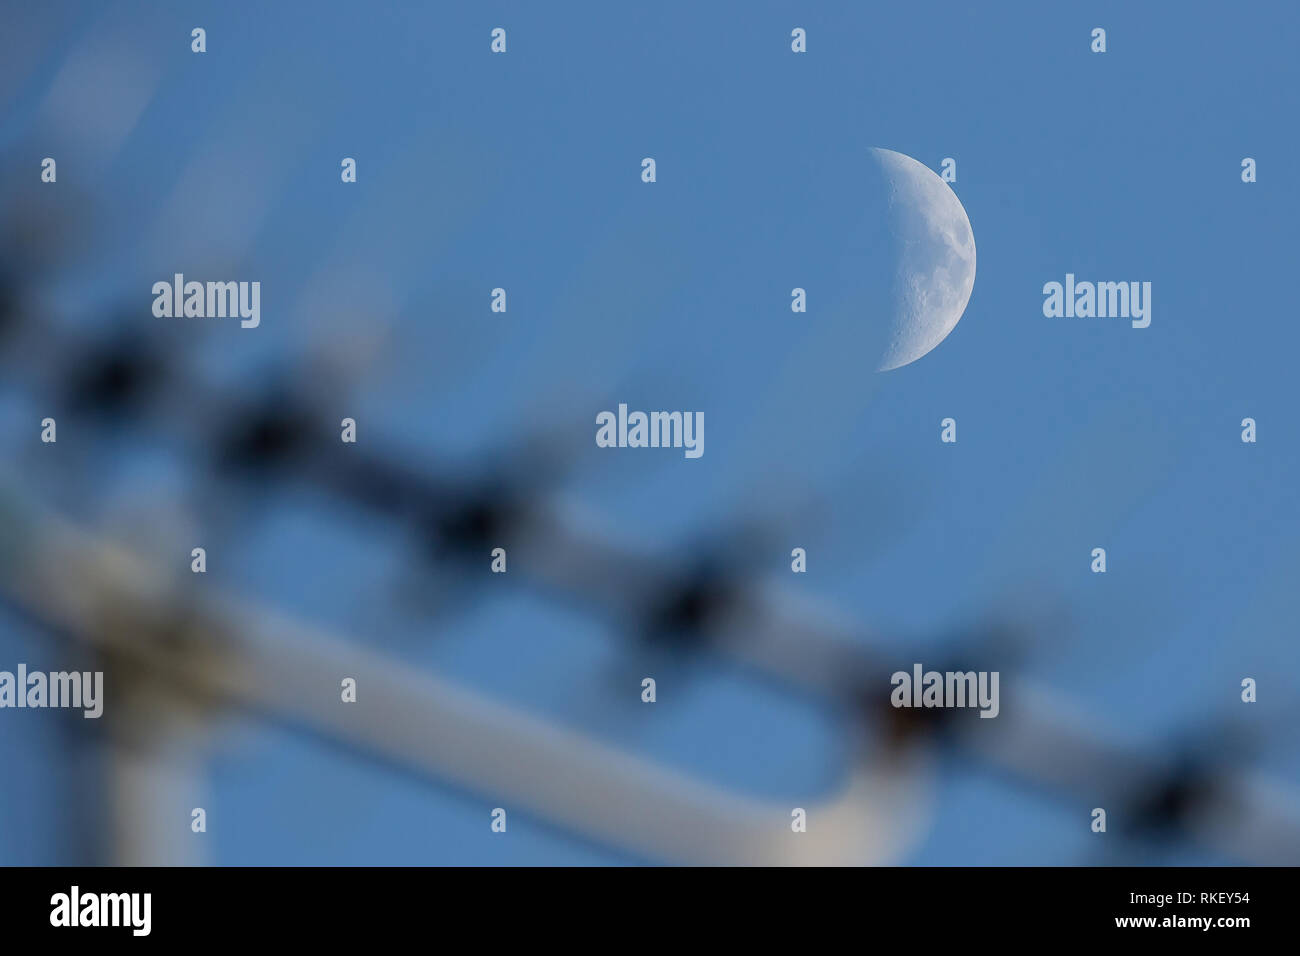 Kidderminster, UK, 11th February, 2019. UK weather: almost clear blue skies reveal a waxing crescent moon as the day draws to an end. It will be a chilly night with temperatures not rising above 2 degrees celsius. The moon can be seen rising above the television aerial on a house roof. Credit: Lee Hudson/Alamy Live News - Stock Image